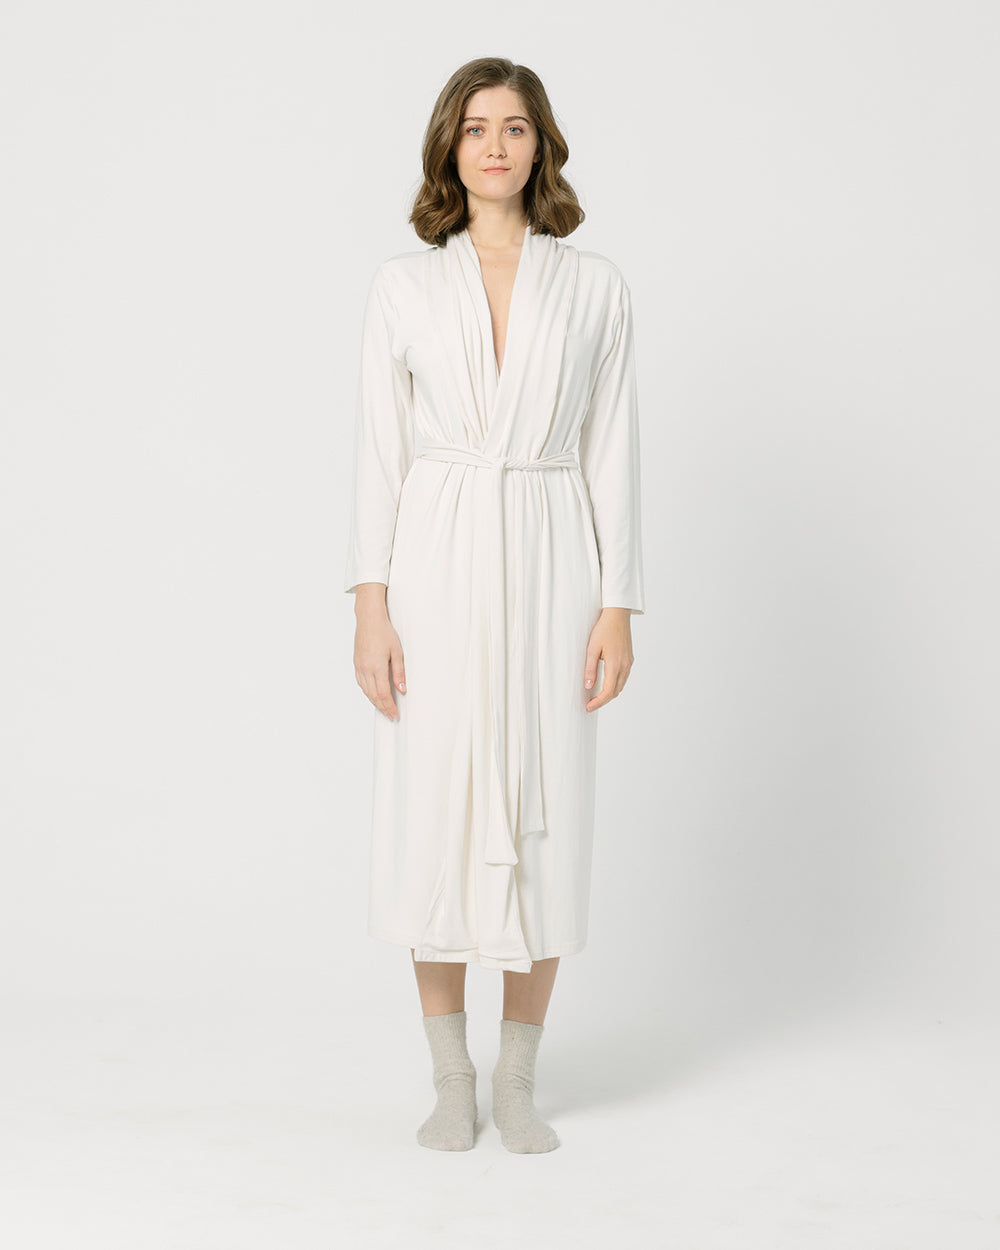 Bone Women's Robe